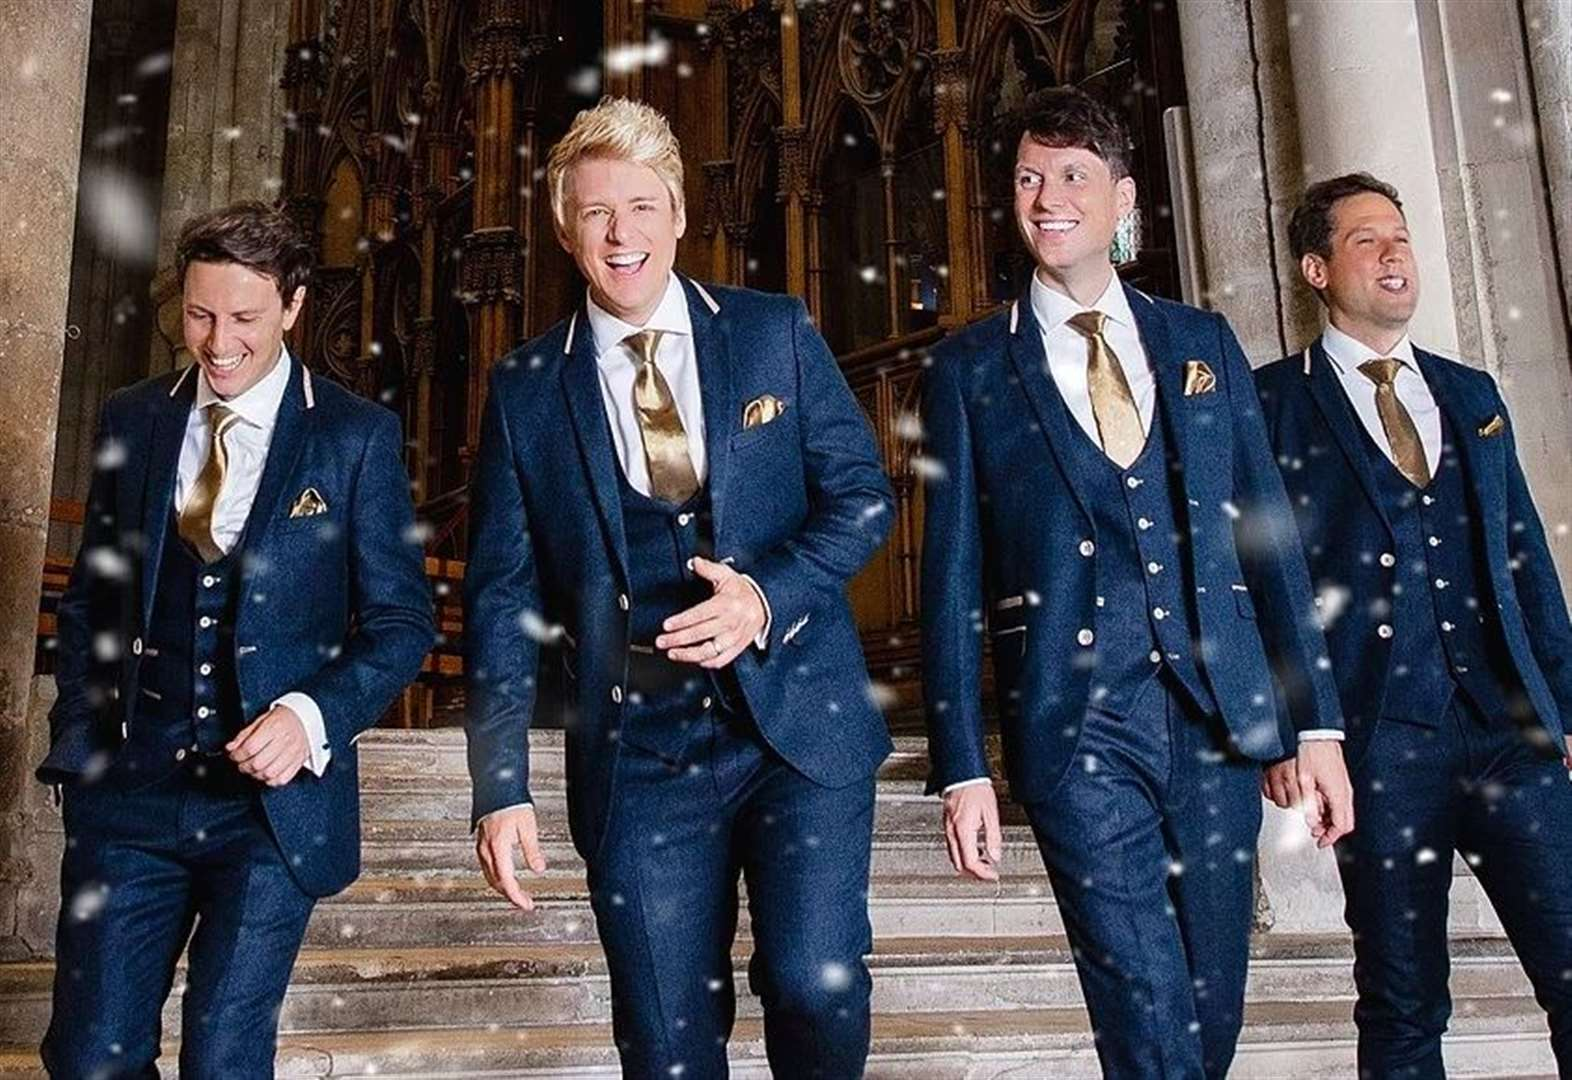 This is when pop opera stars G4 will bring Christmas tour to St Edmundsbury Cathedral